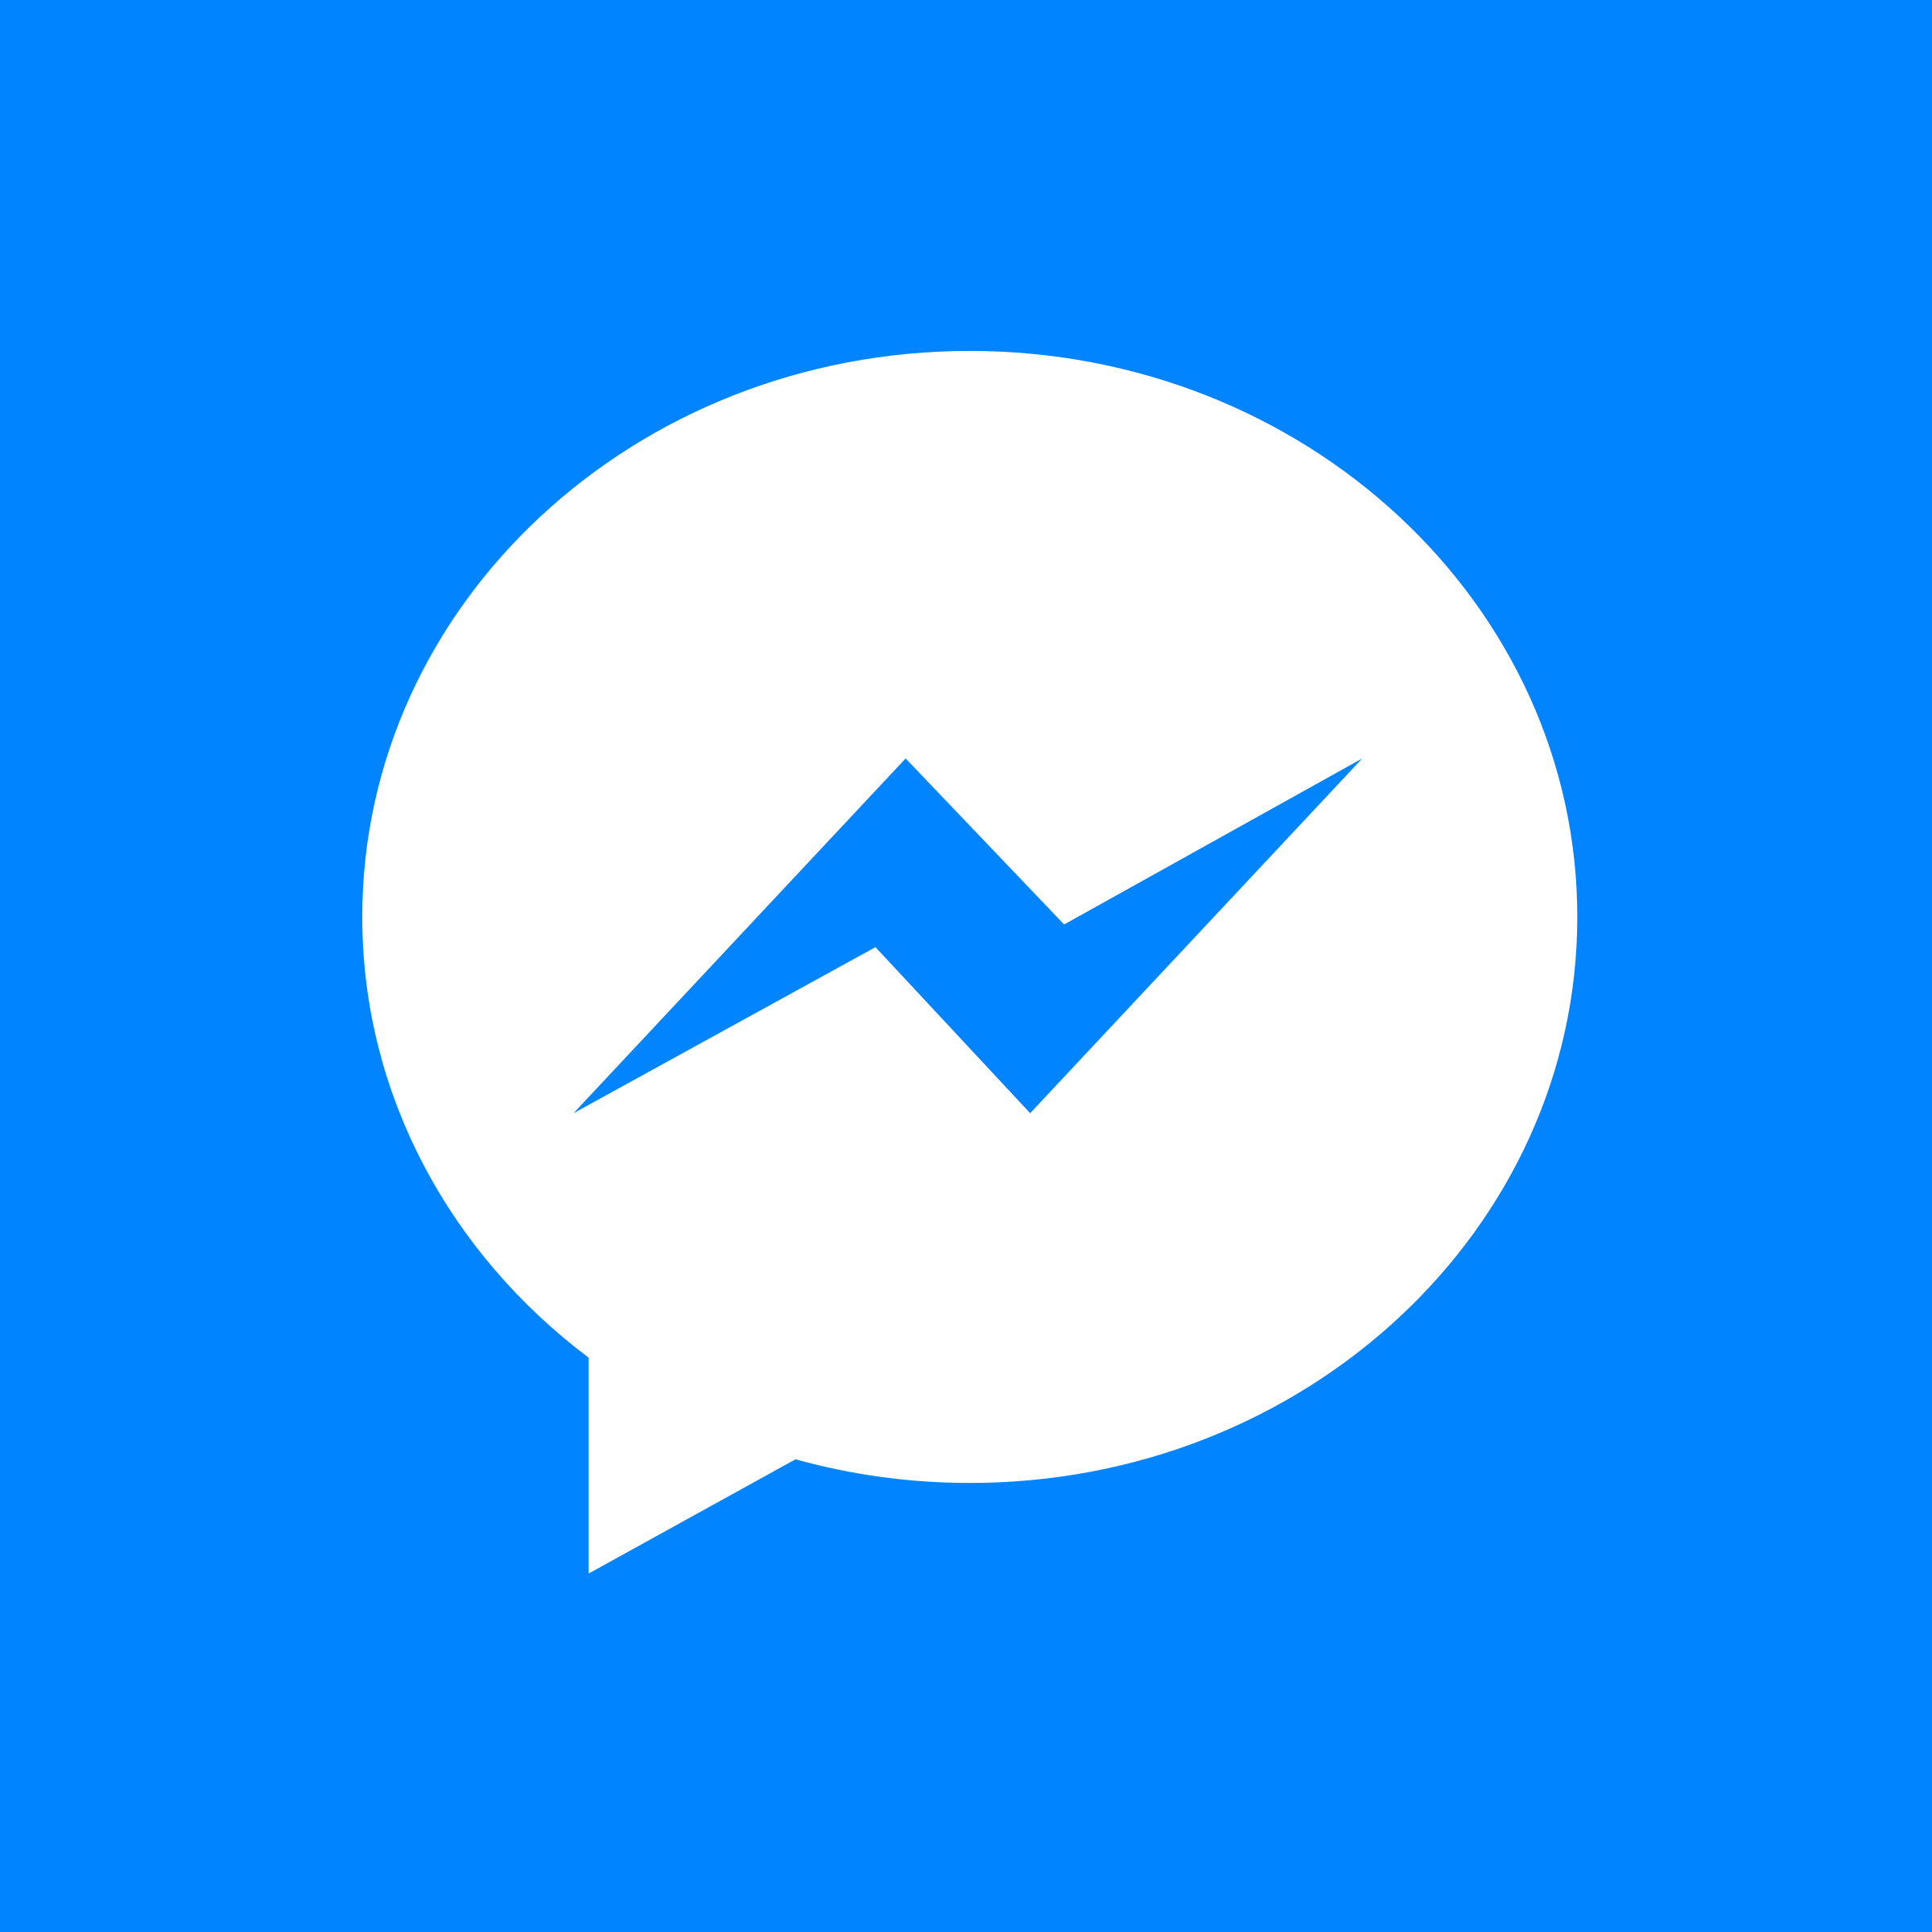 facebook messenger white logo png transparent amp svg vector